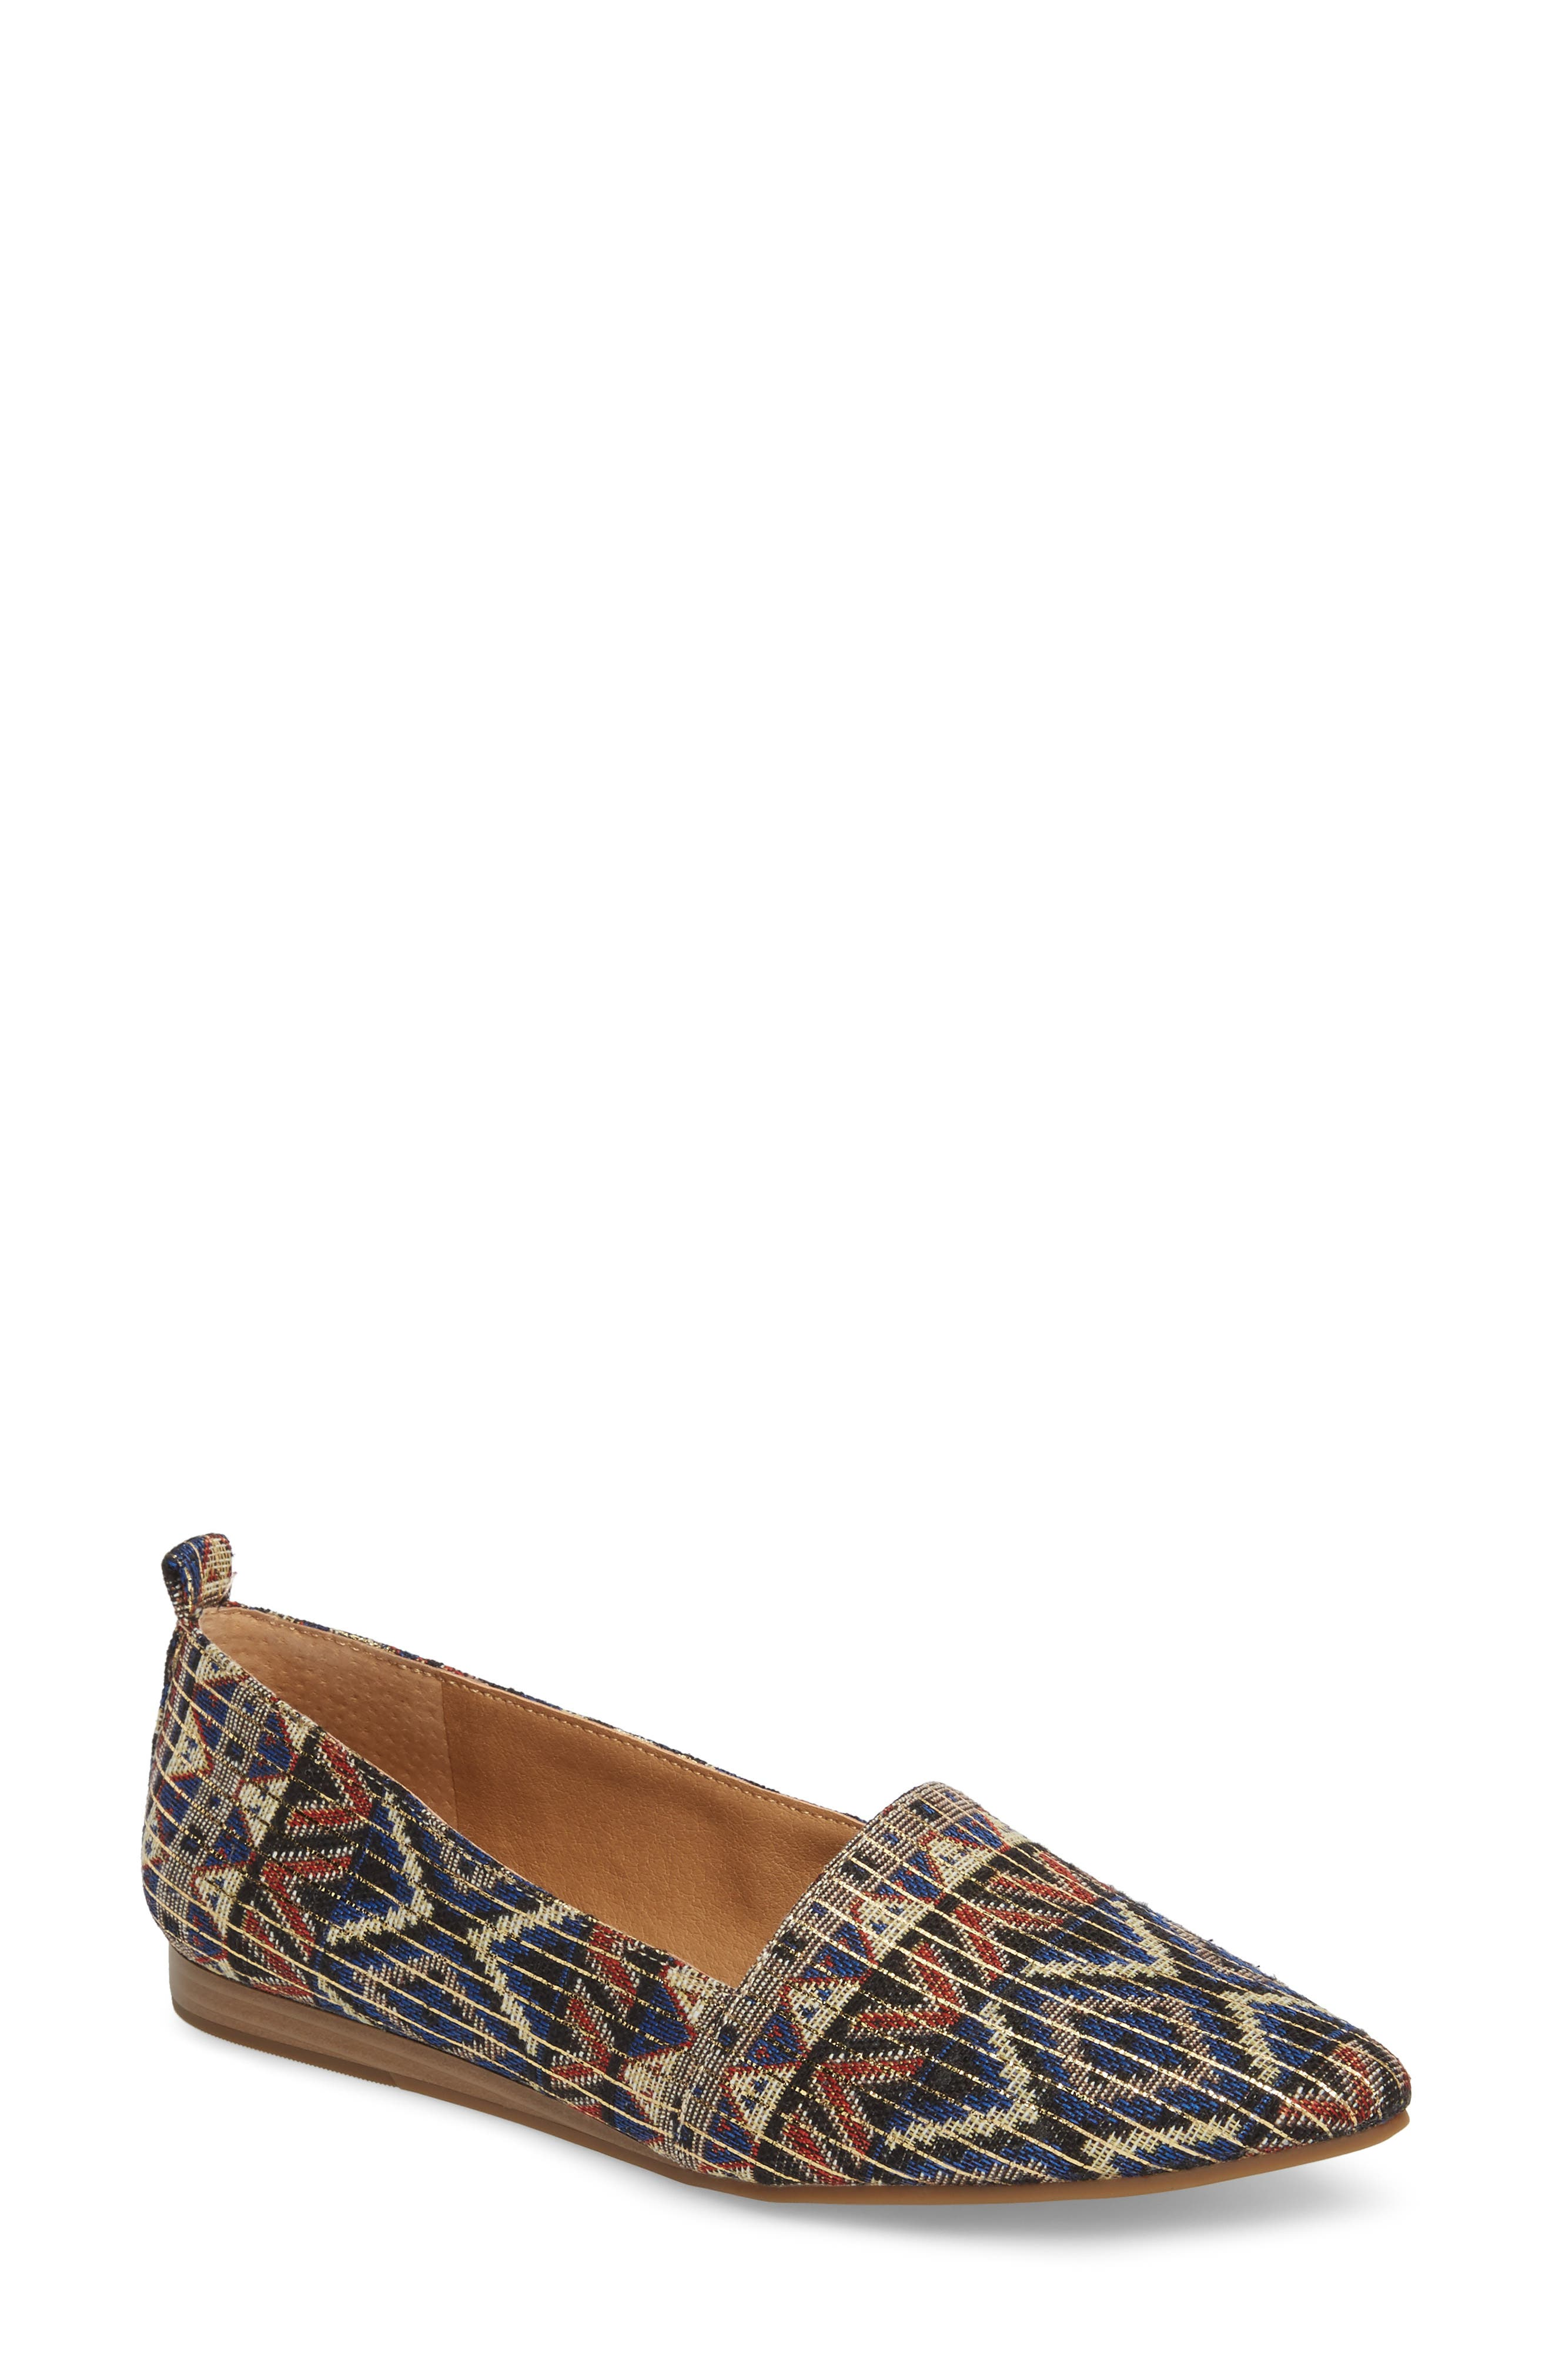 Beechmer Pointy Toe Flat,                         Main,                         color, Picante Leather